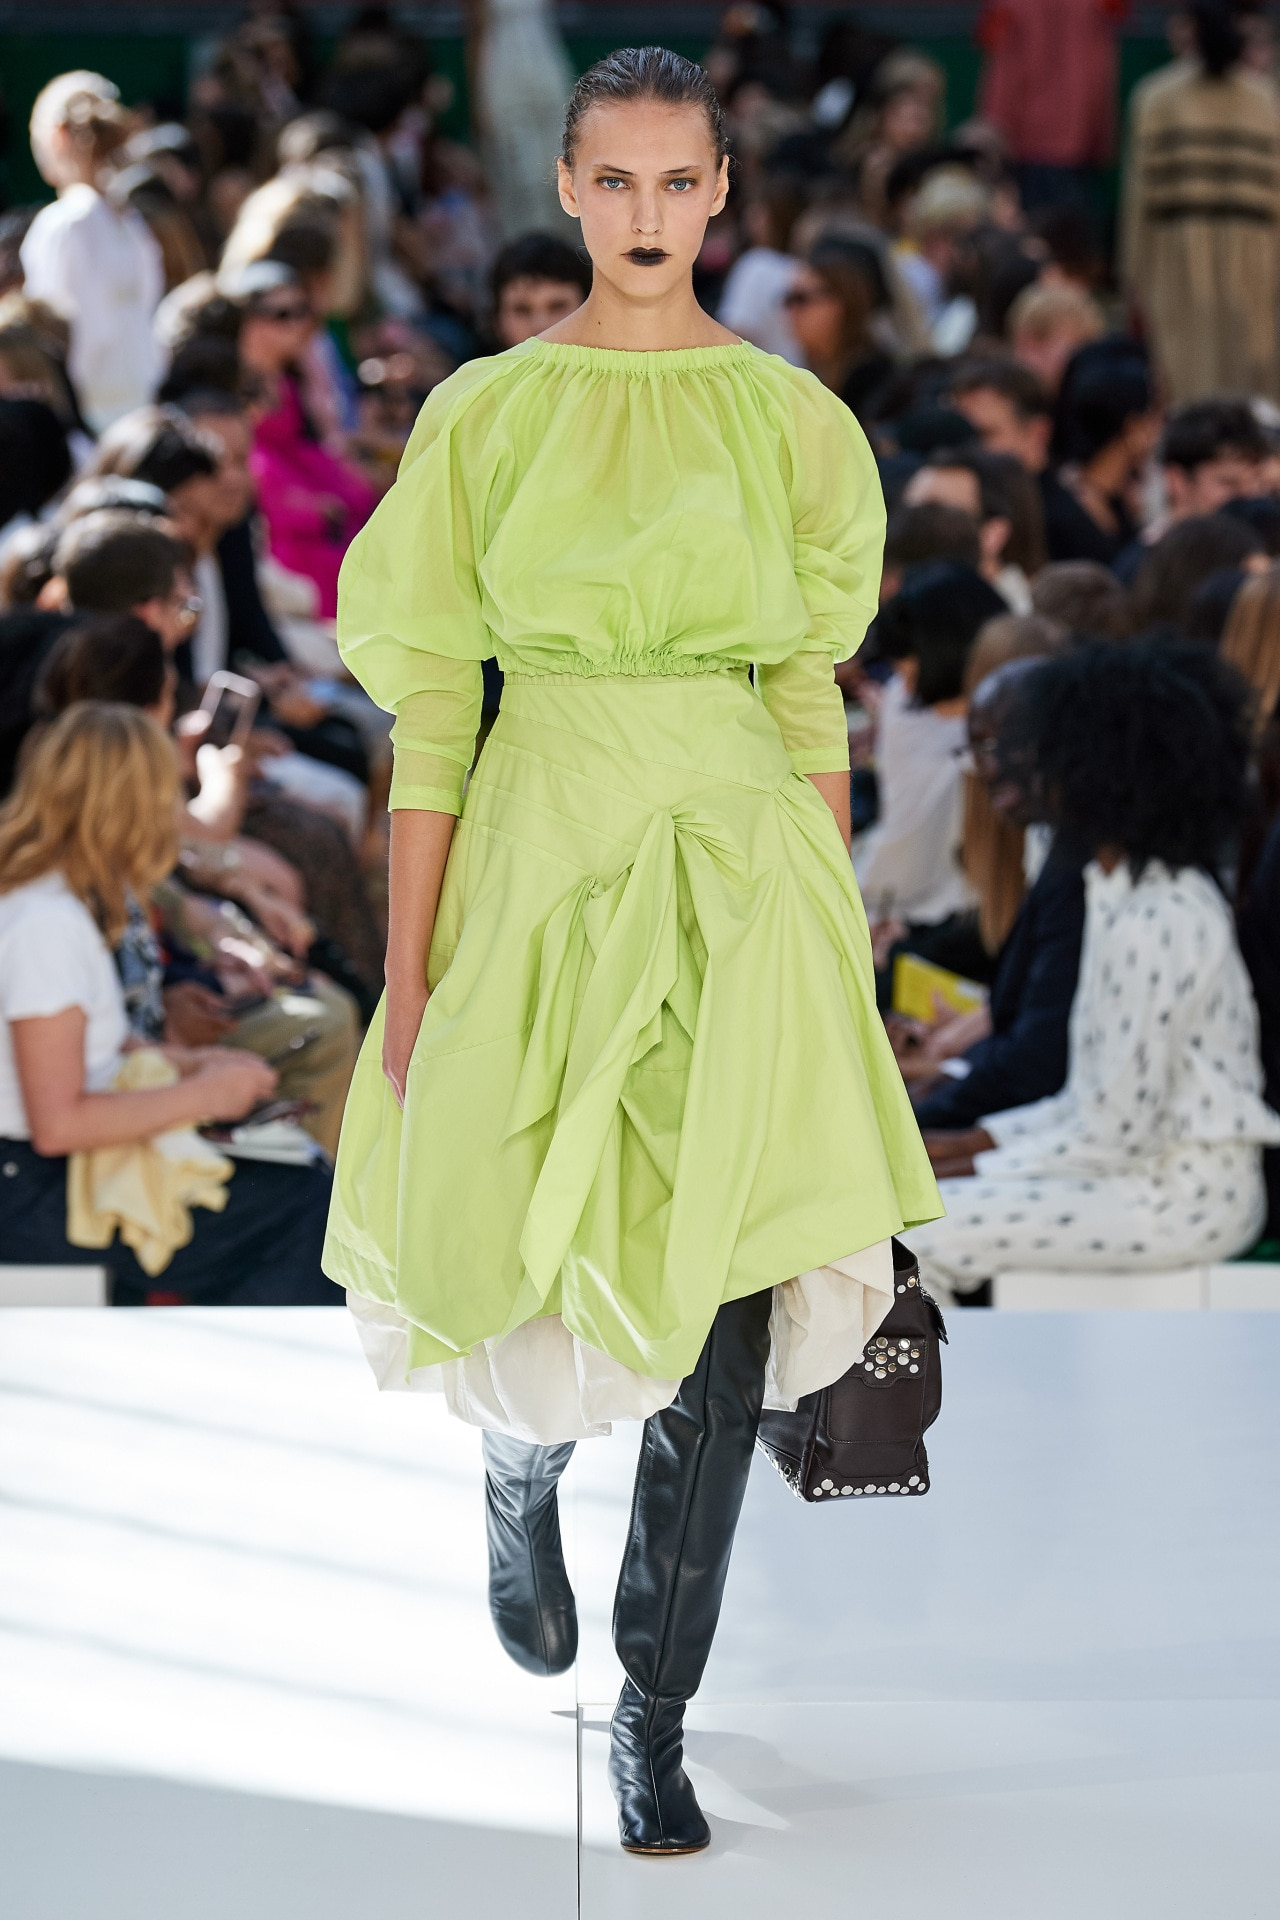 Suzy Menkes at London Fashion Week ready-to-wear spring/summer 2020